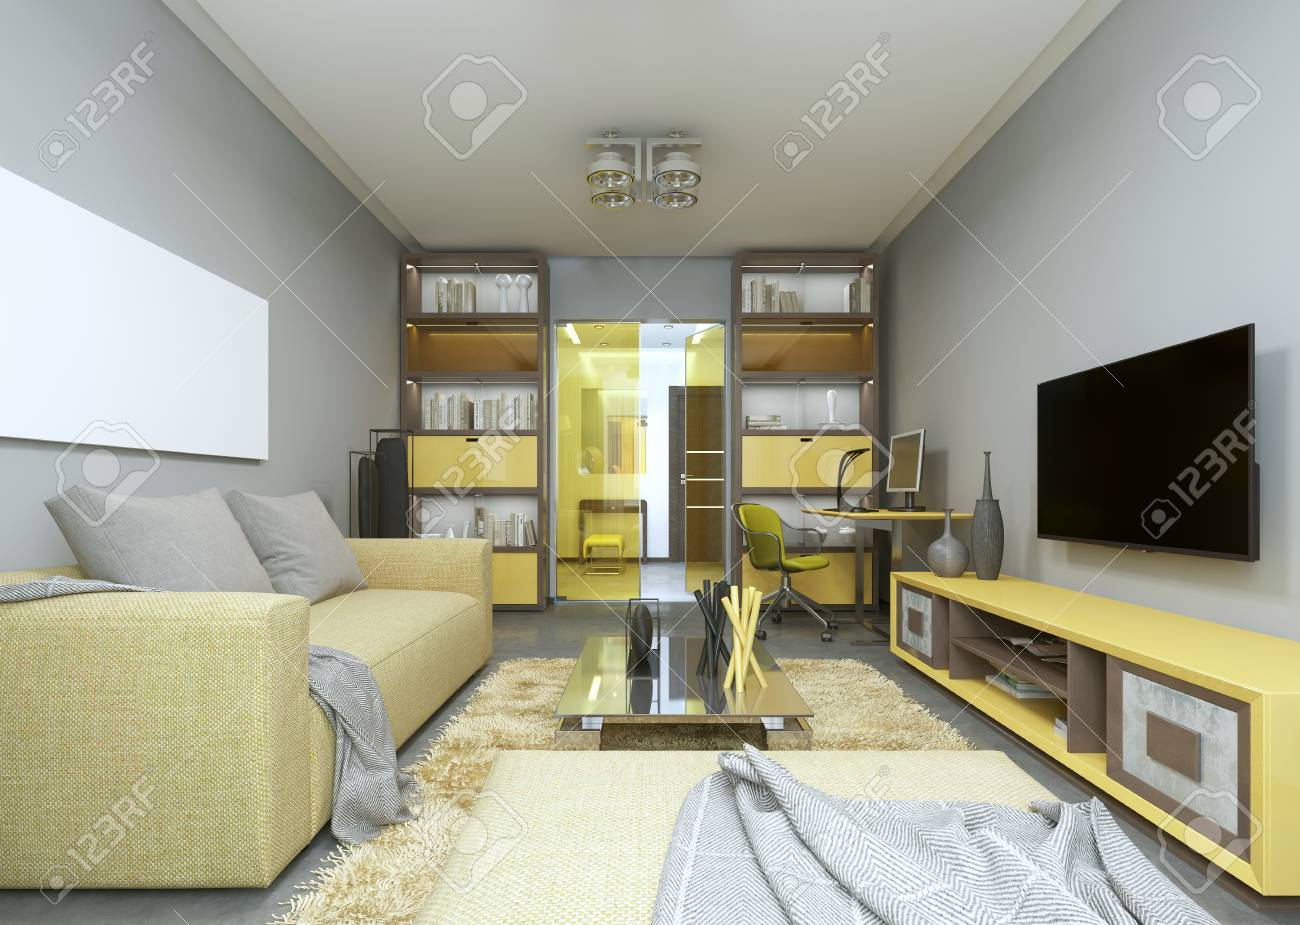 Design modern living room in grey and yellow colors 3d render stock photo